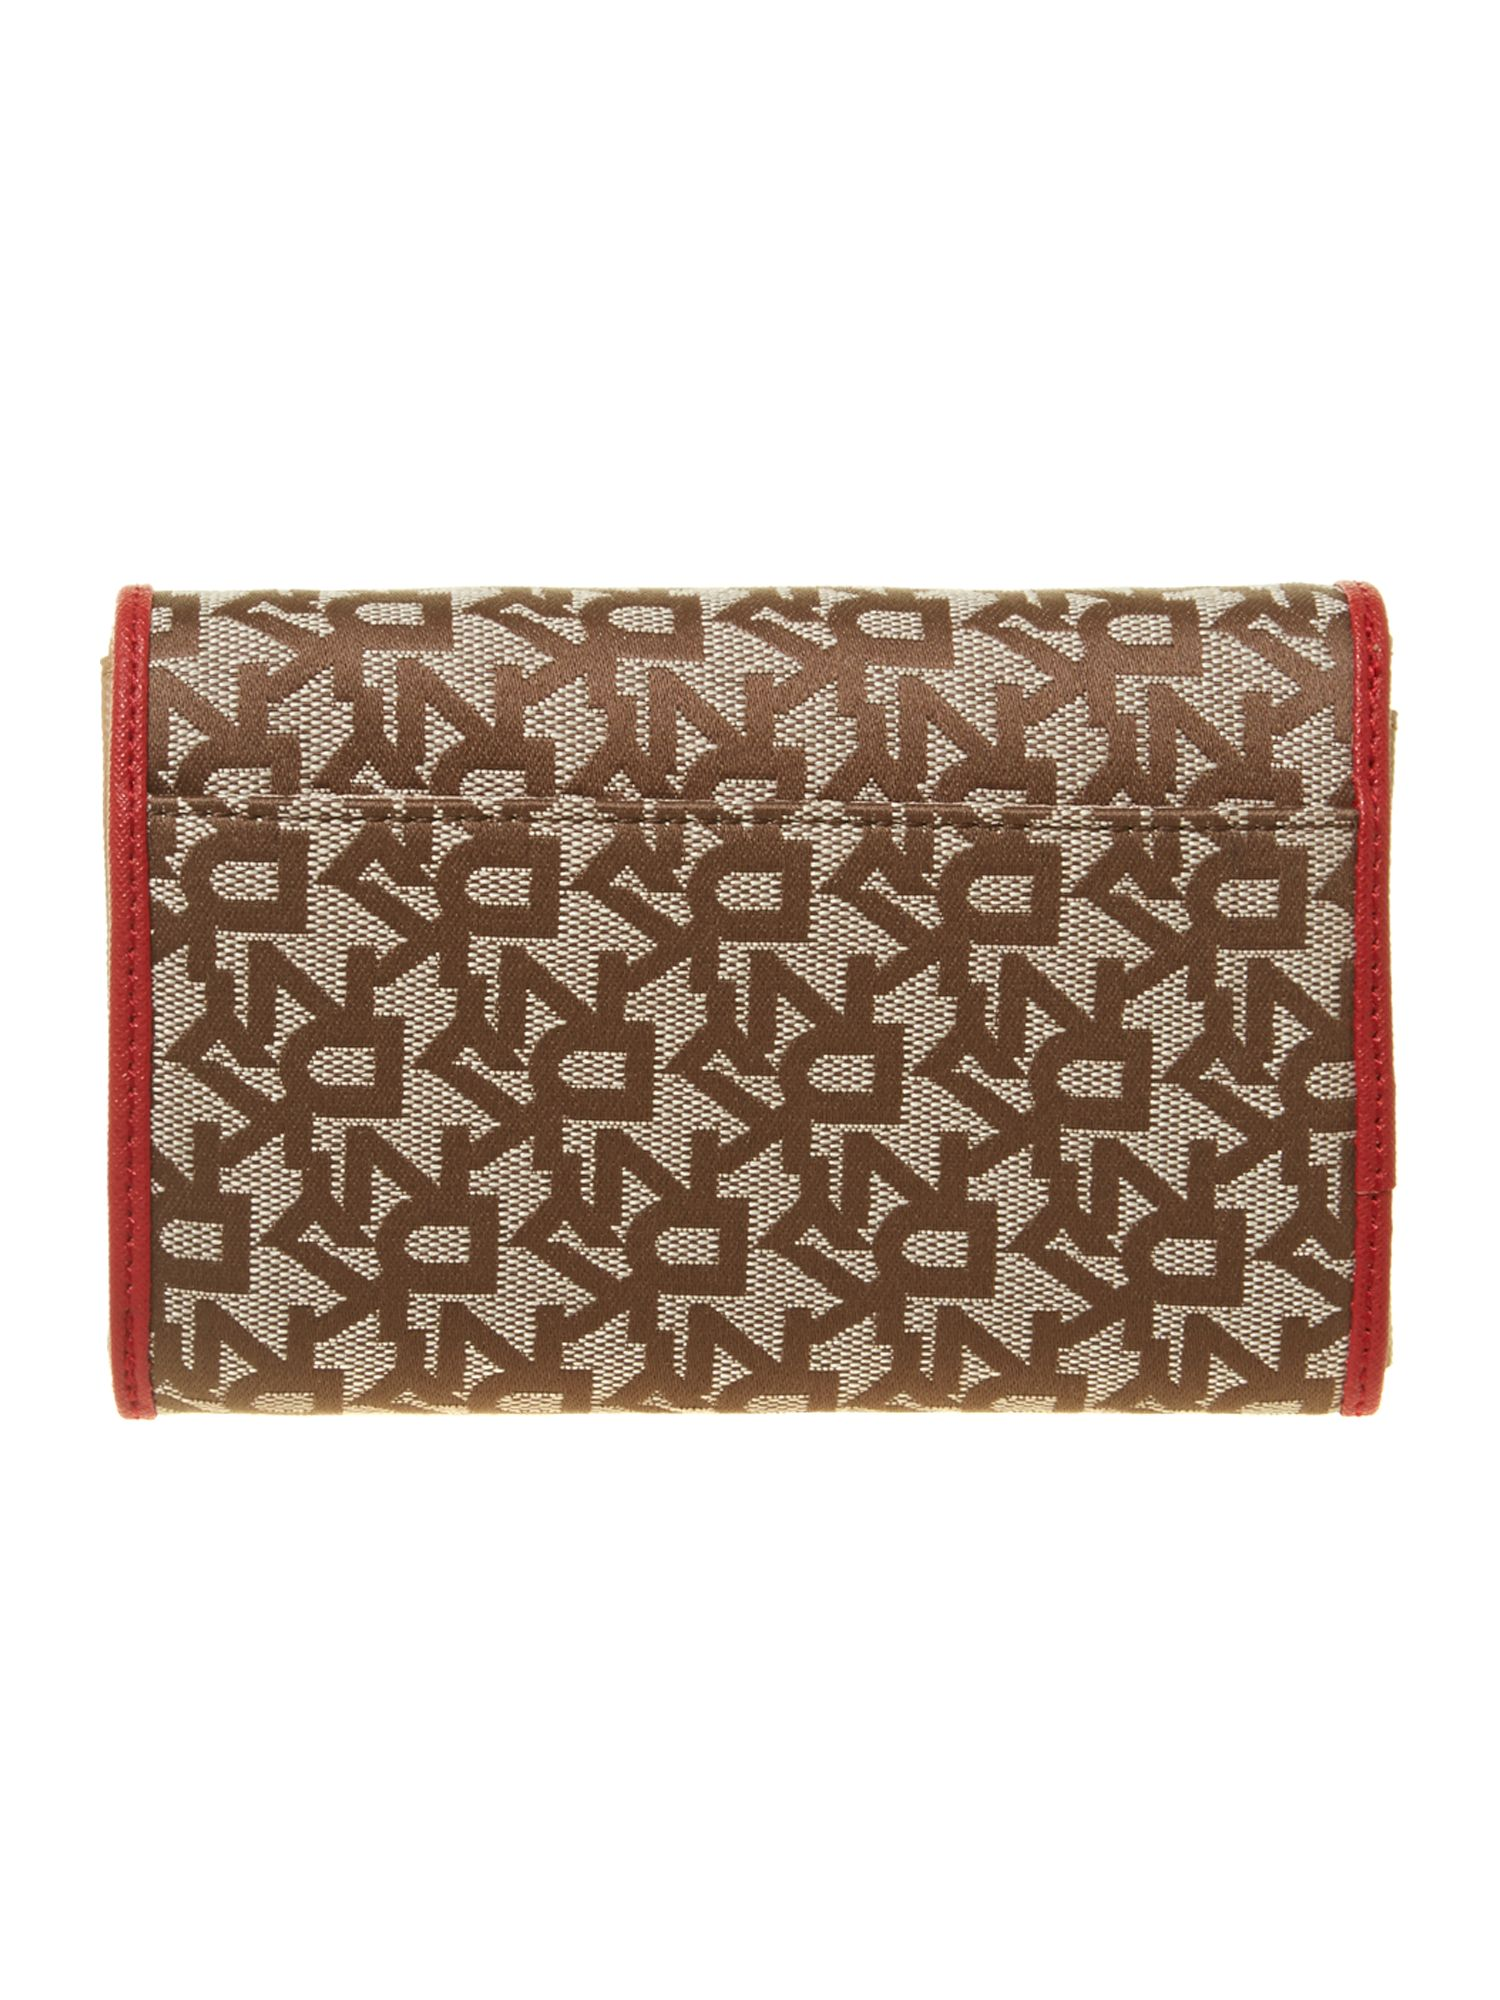 Saffiano red medium flapover purse